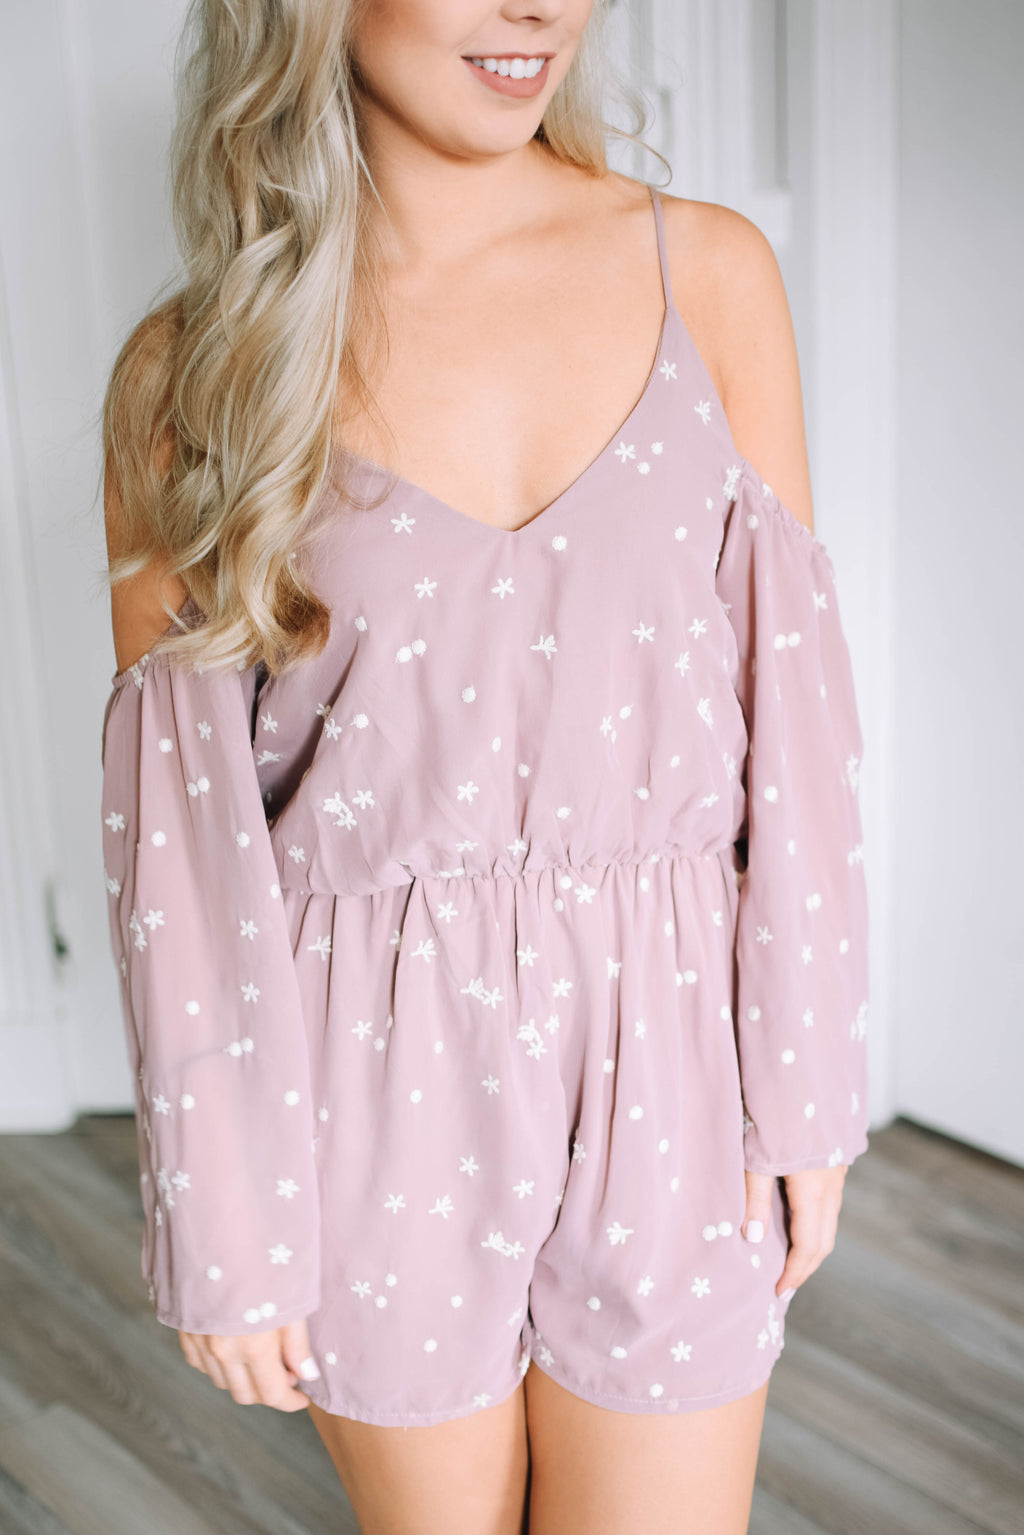 Starry Romper - Mauve - Mint Pop Shop